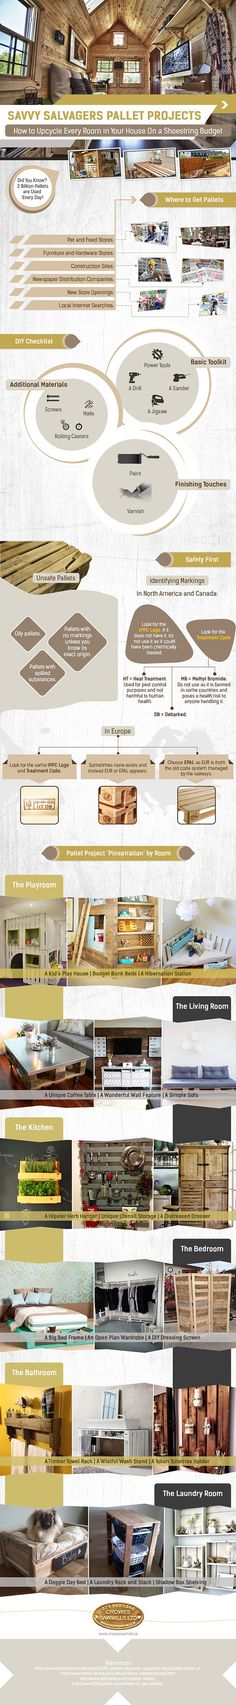 INFOGRAPHIC: How to make just about anything using pallets - by Kristine Lofgren - Credit: Crowes Sawmills - http://www.crowesawmills.ie/products/buildings-and-timber/timber/